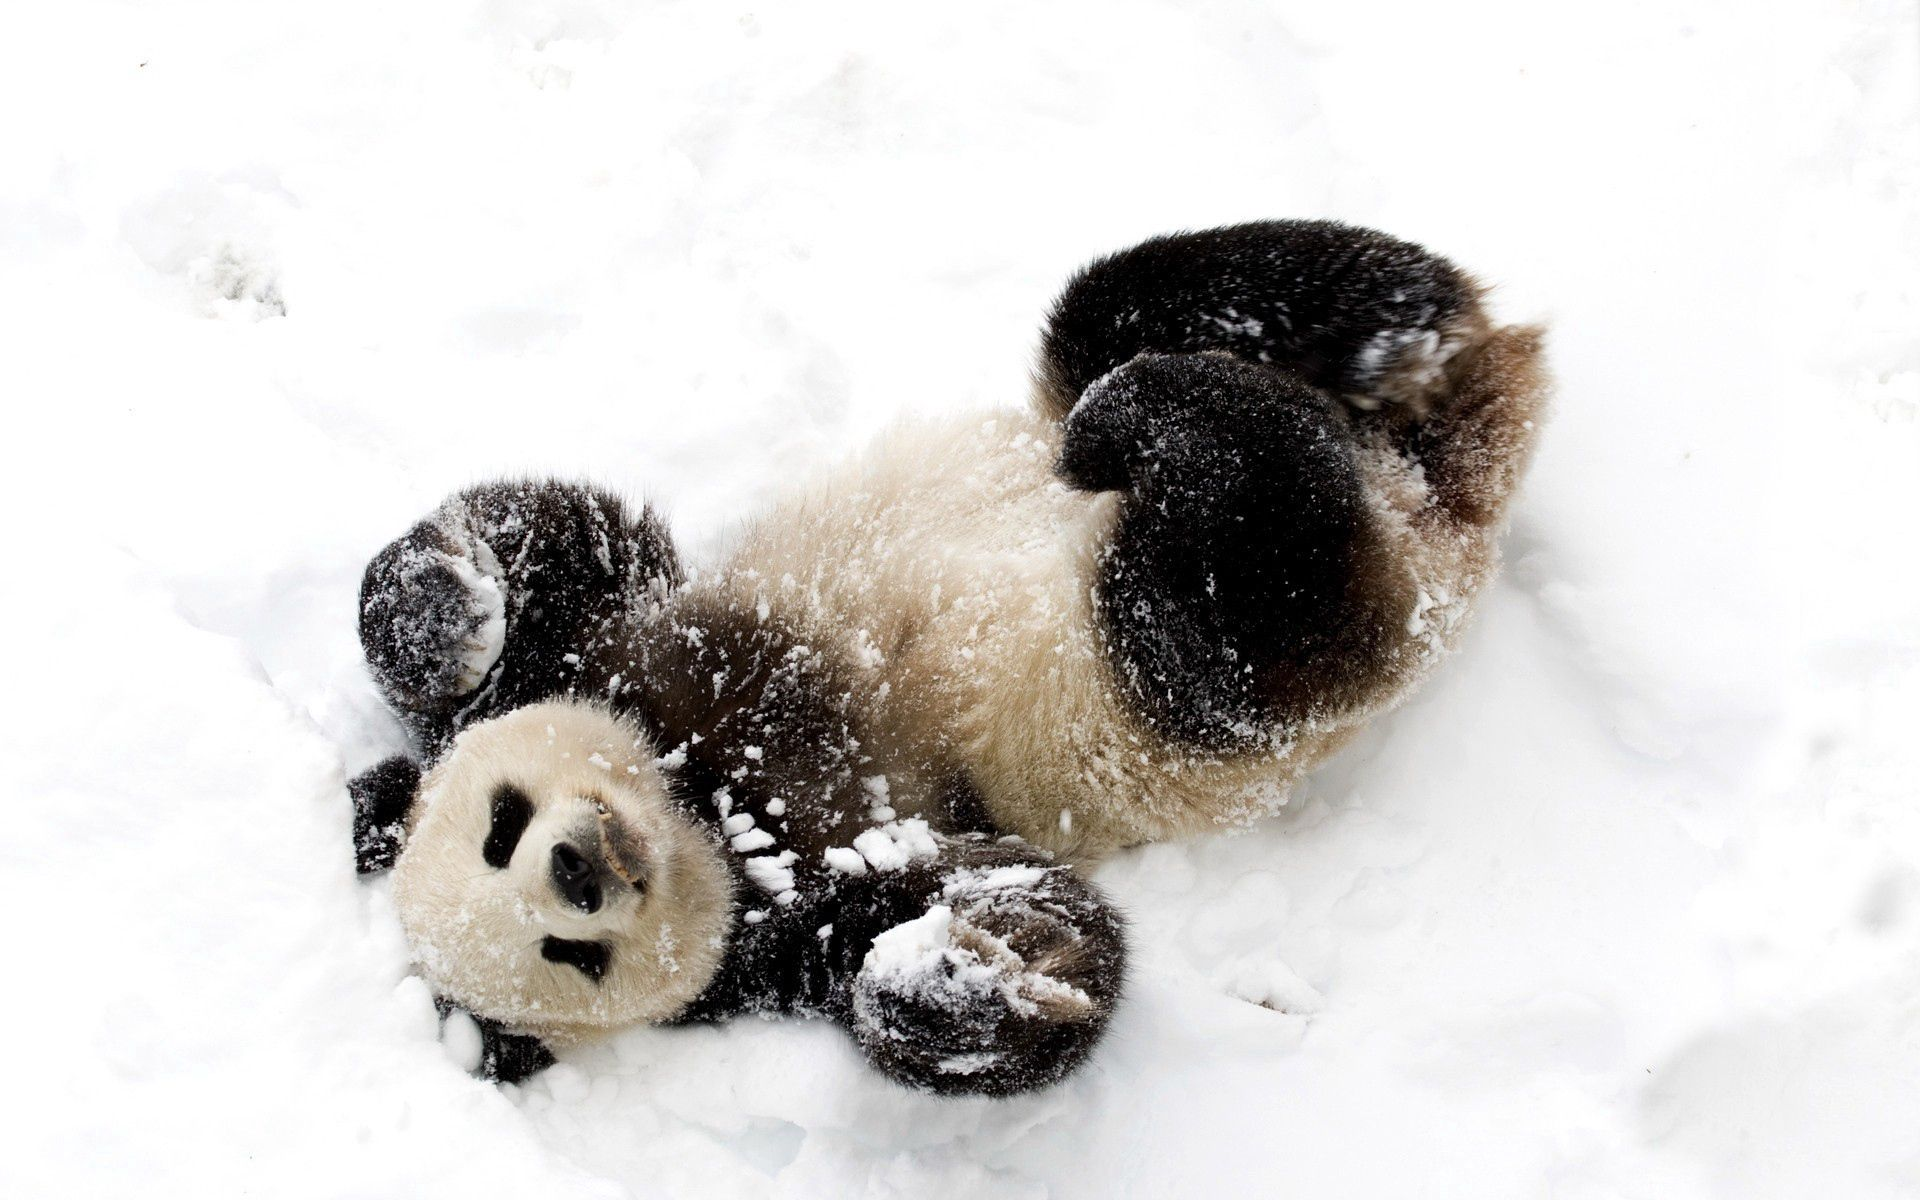 125310 download wallpaper Animals, Snow, Spotted, Spotty, Playful, Panda, Bamboo Bear screensavers and pictures for free